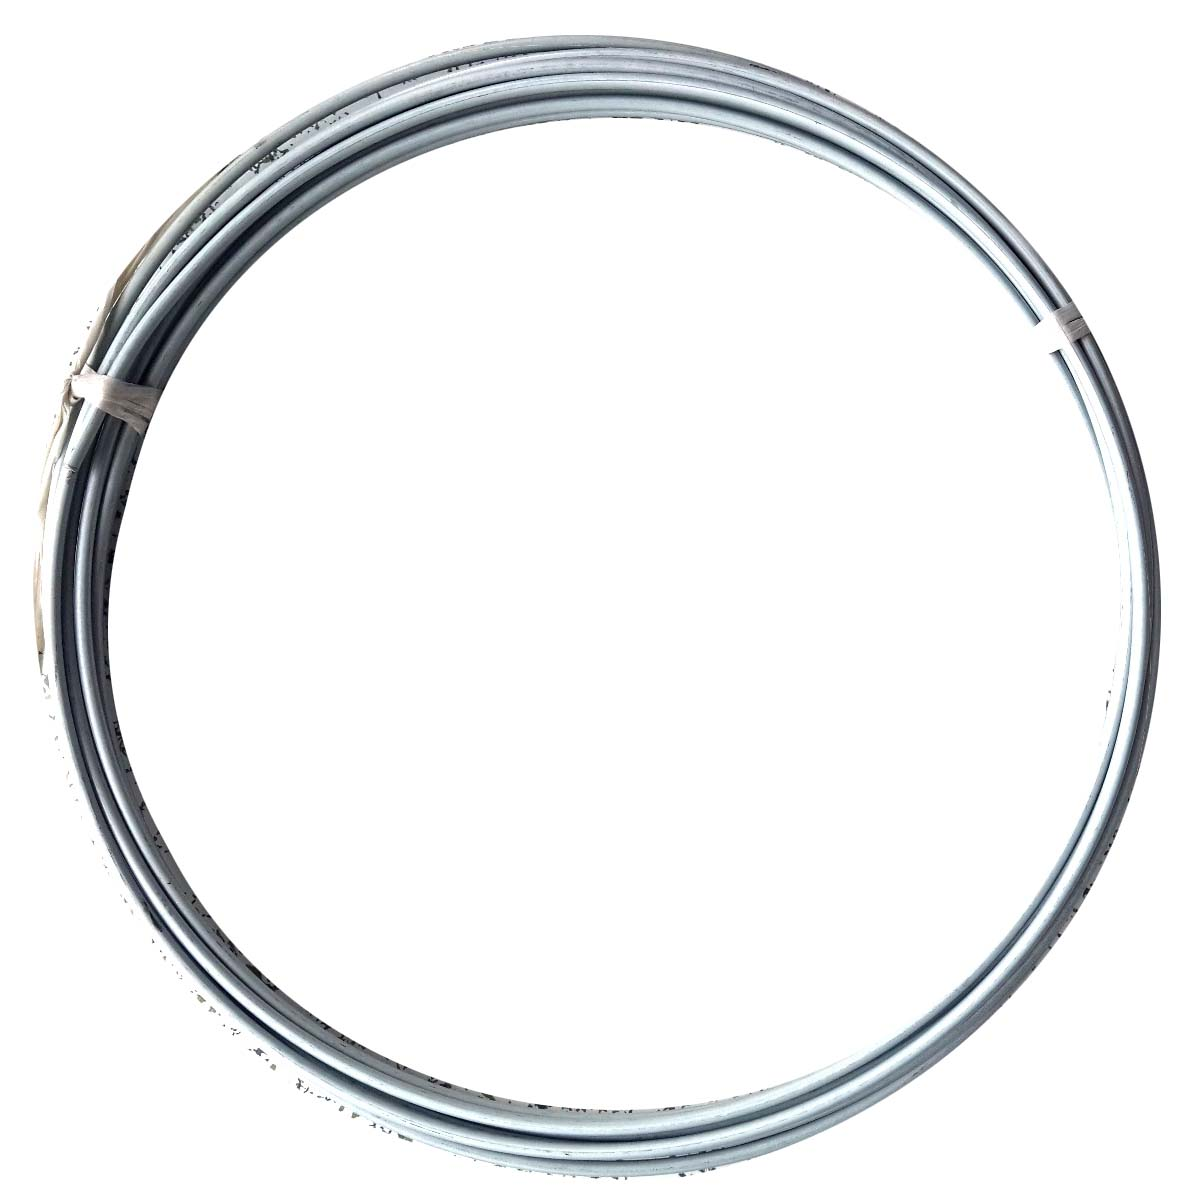 "4.76mm 3/16"" OD Steel brake line tubing coil zinc plated silver color"